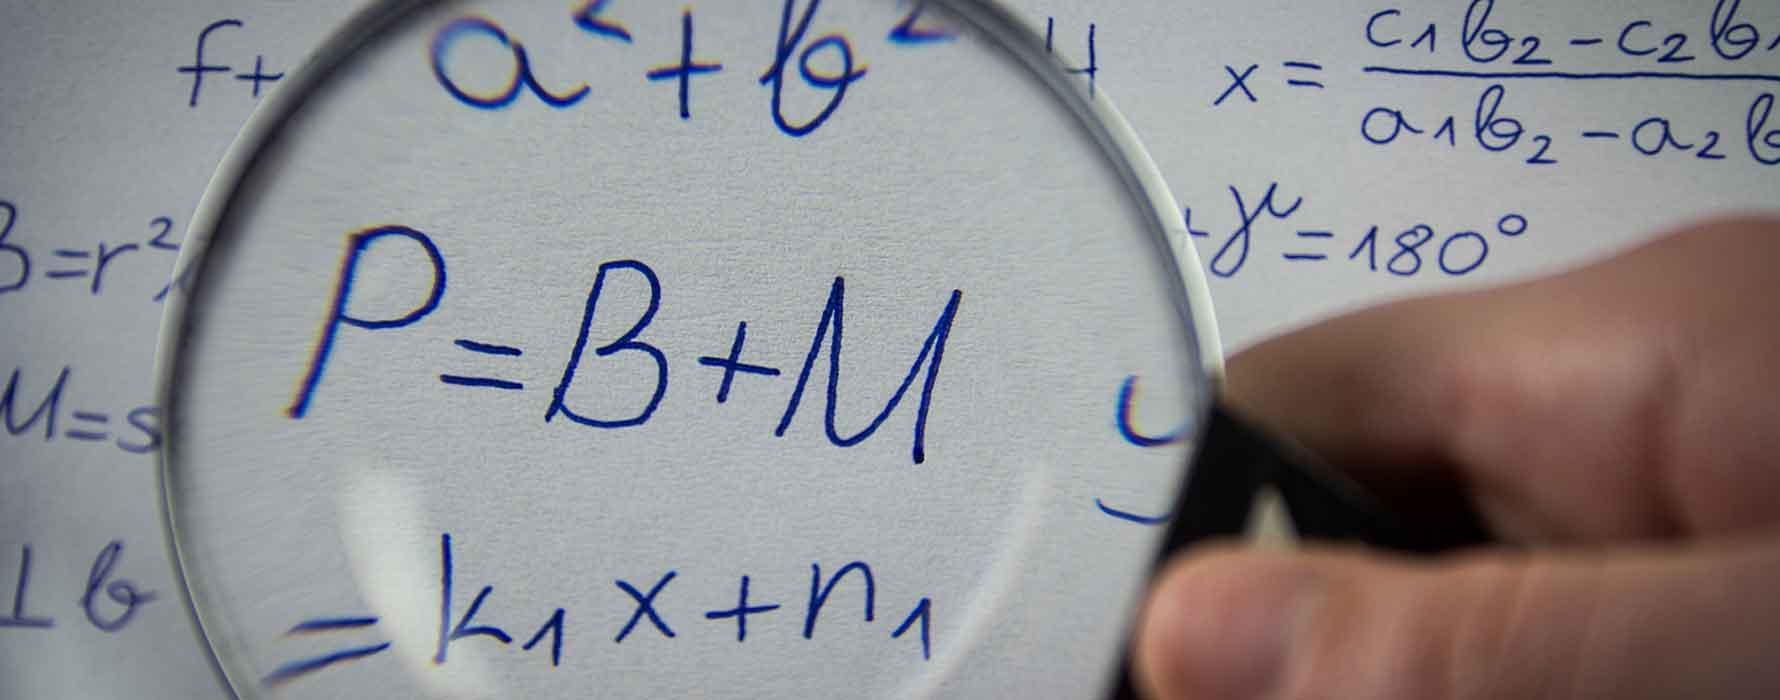 Magnifying glass over math problems